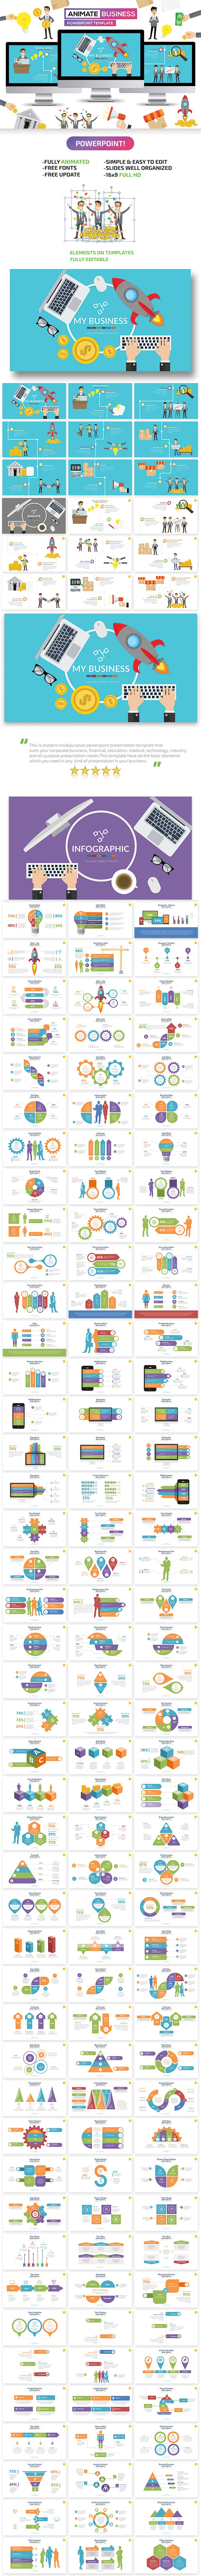 Business Animate Powerpoint Presentation - PowerPoint Templates Presentation Templates